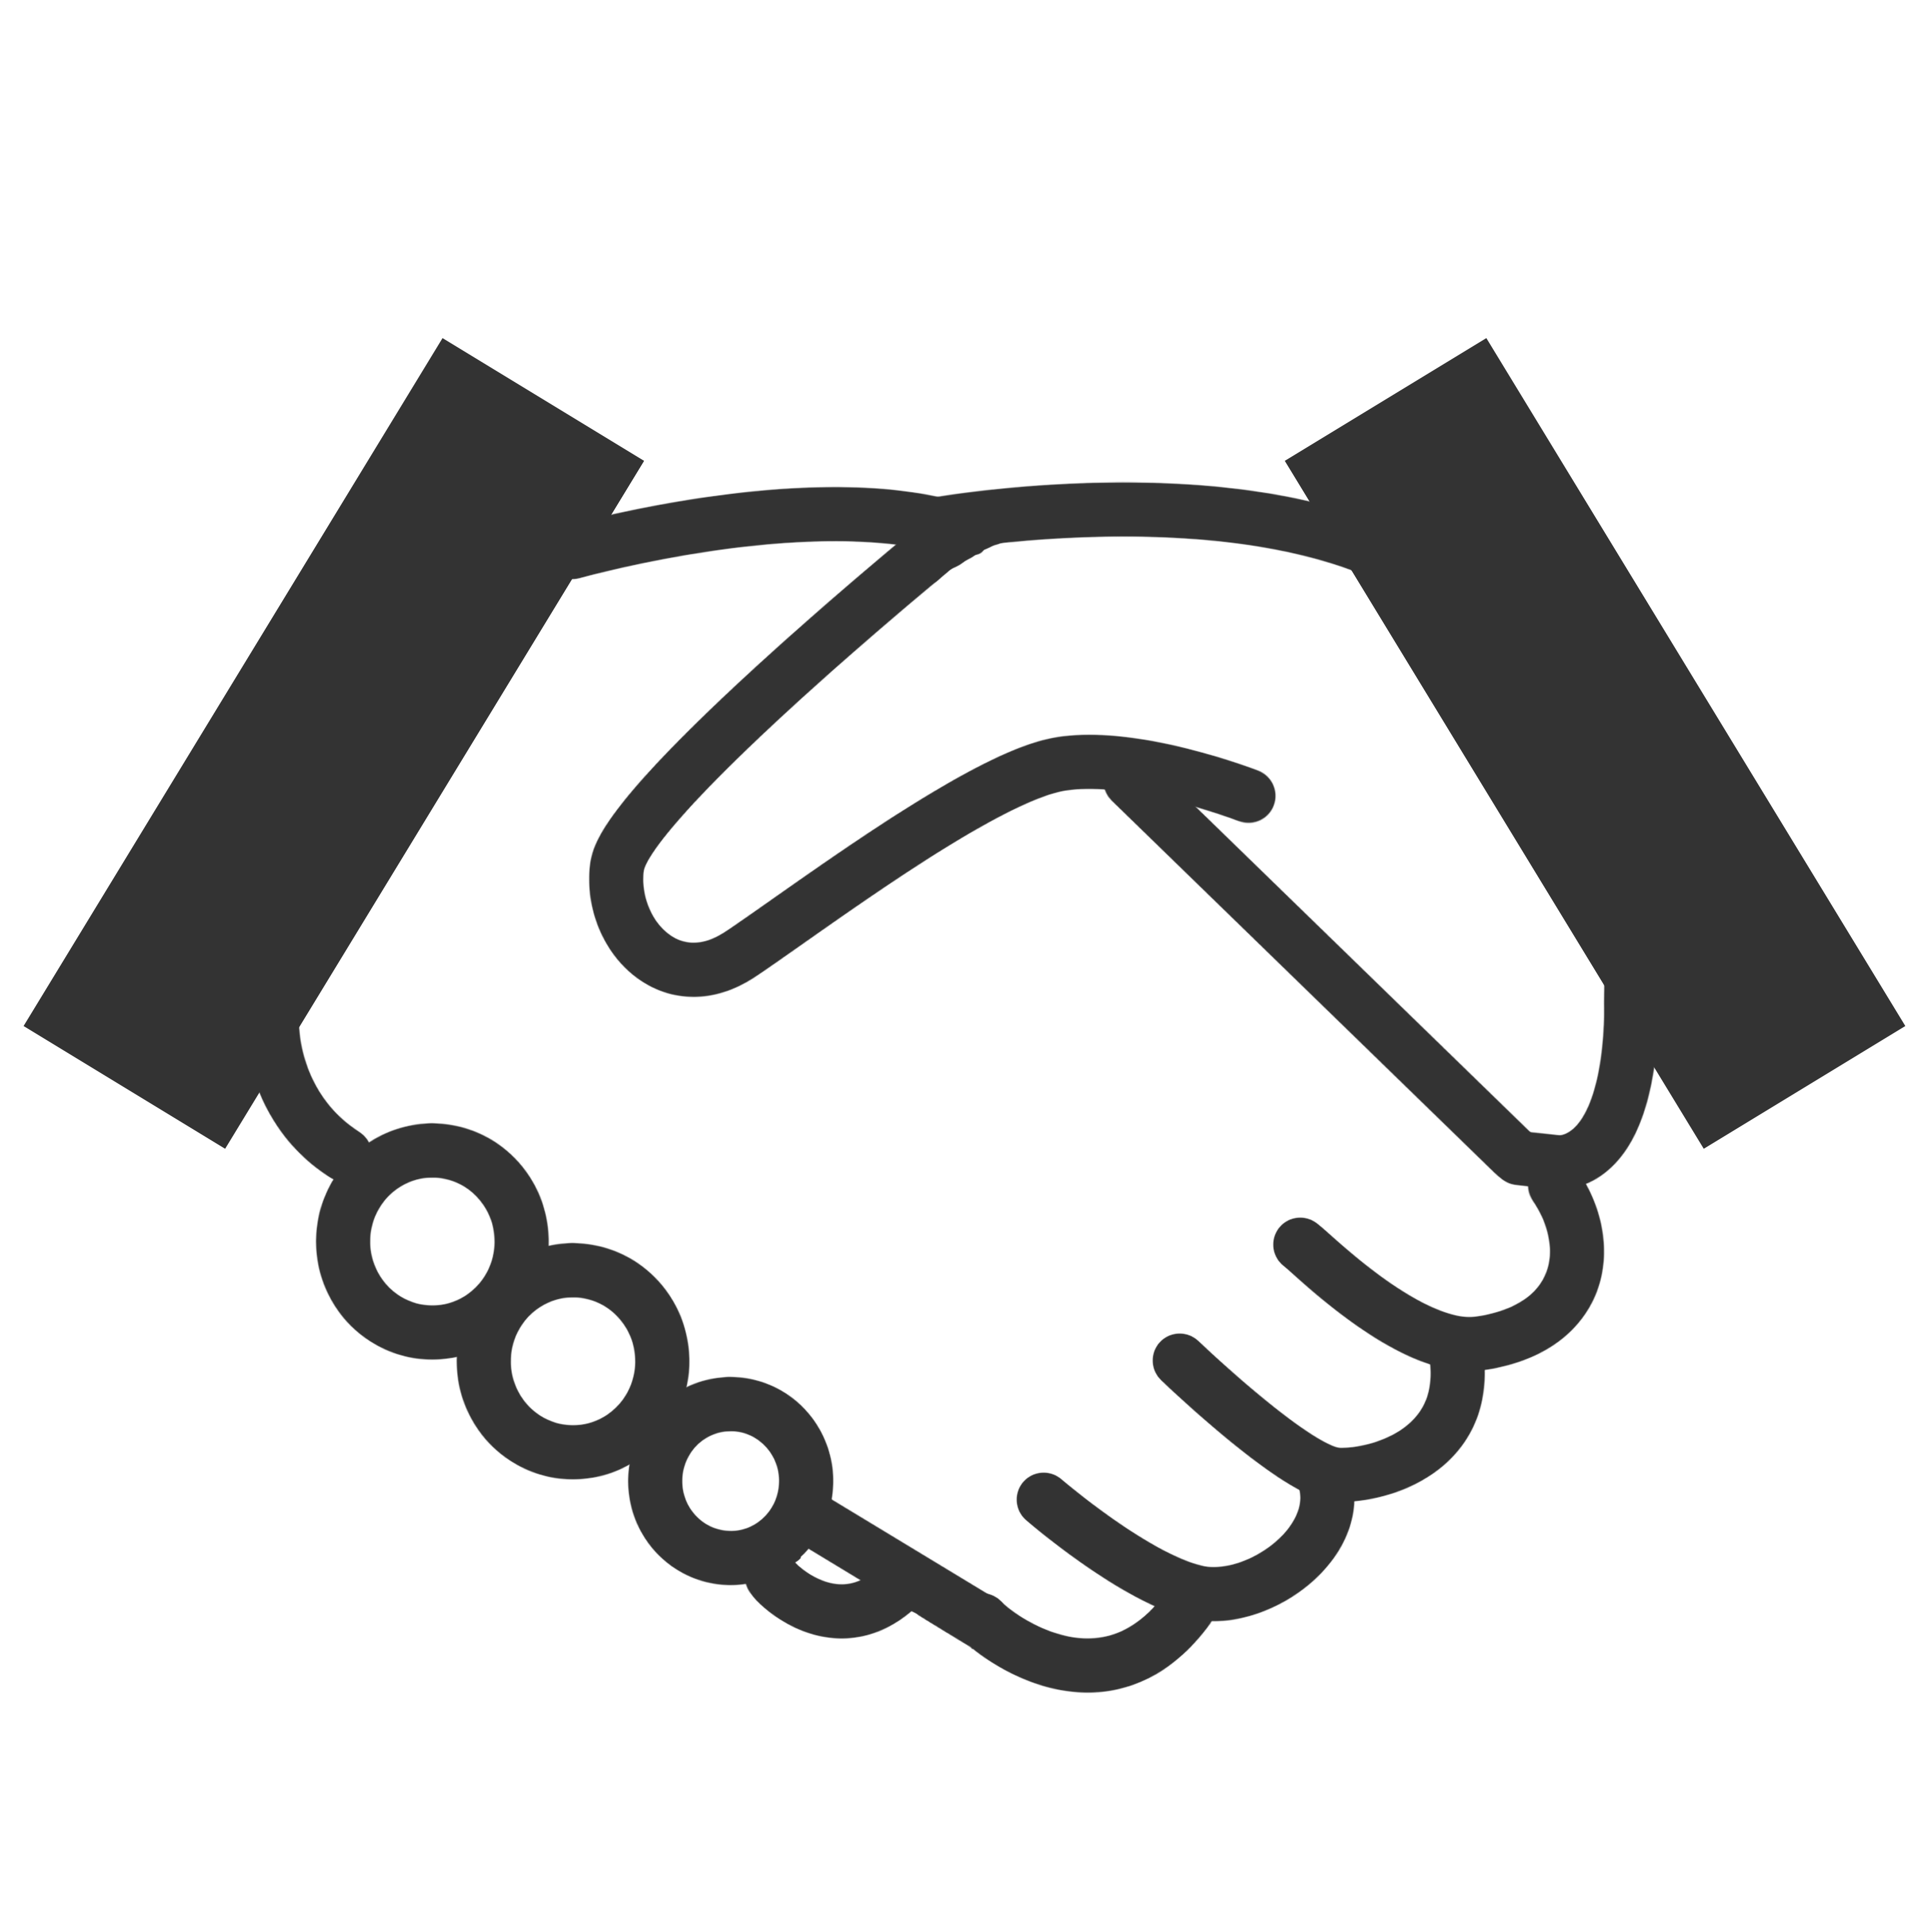 Handshake clipart negotiation. Png transparent images group